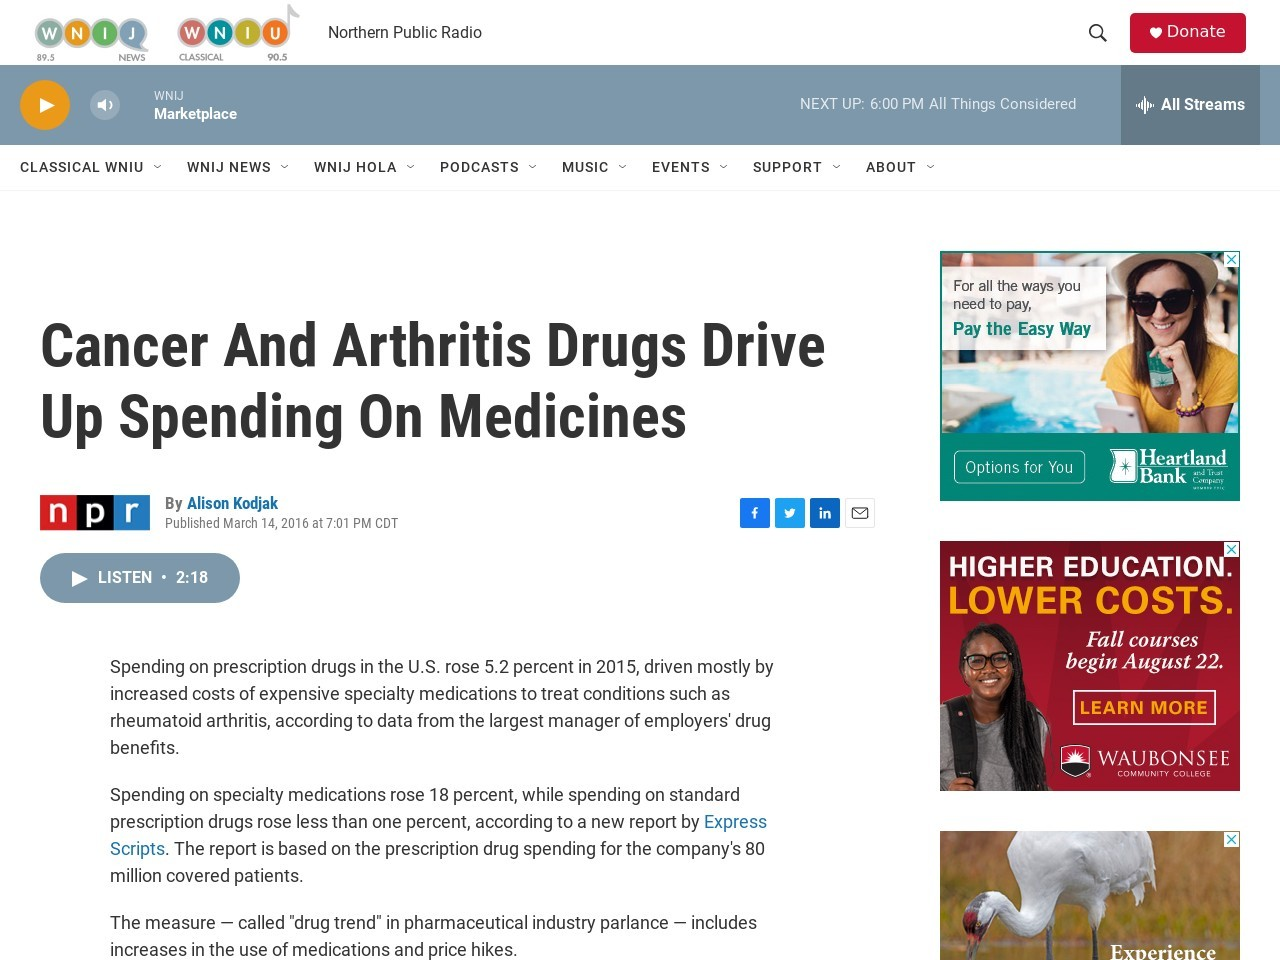 Cancer And Arthritis Drugs Drive Up Spending On Medicines